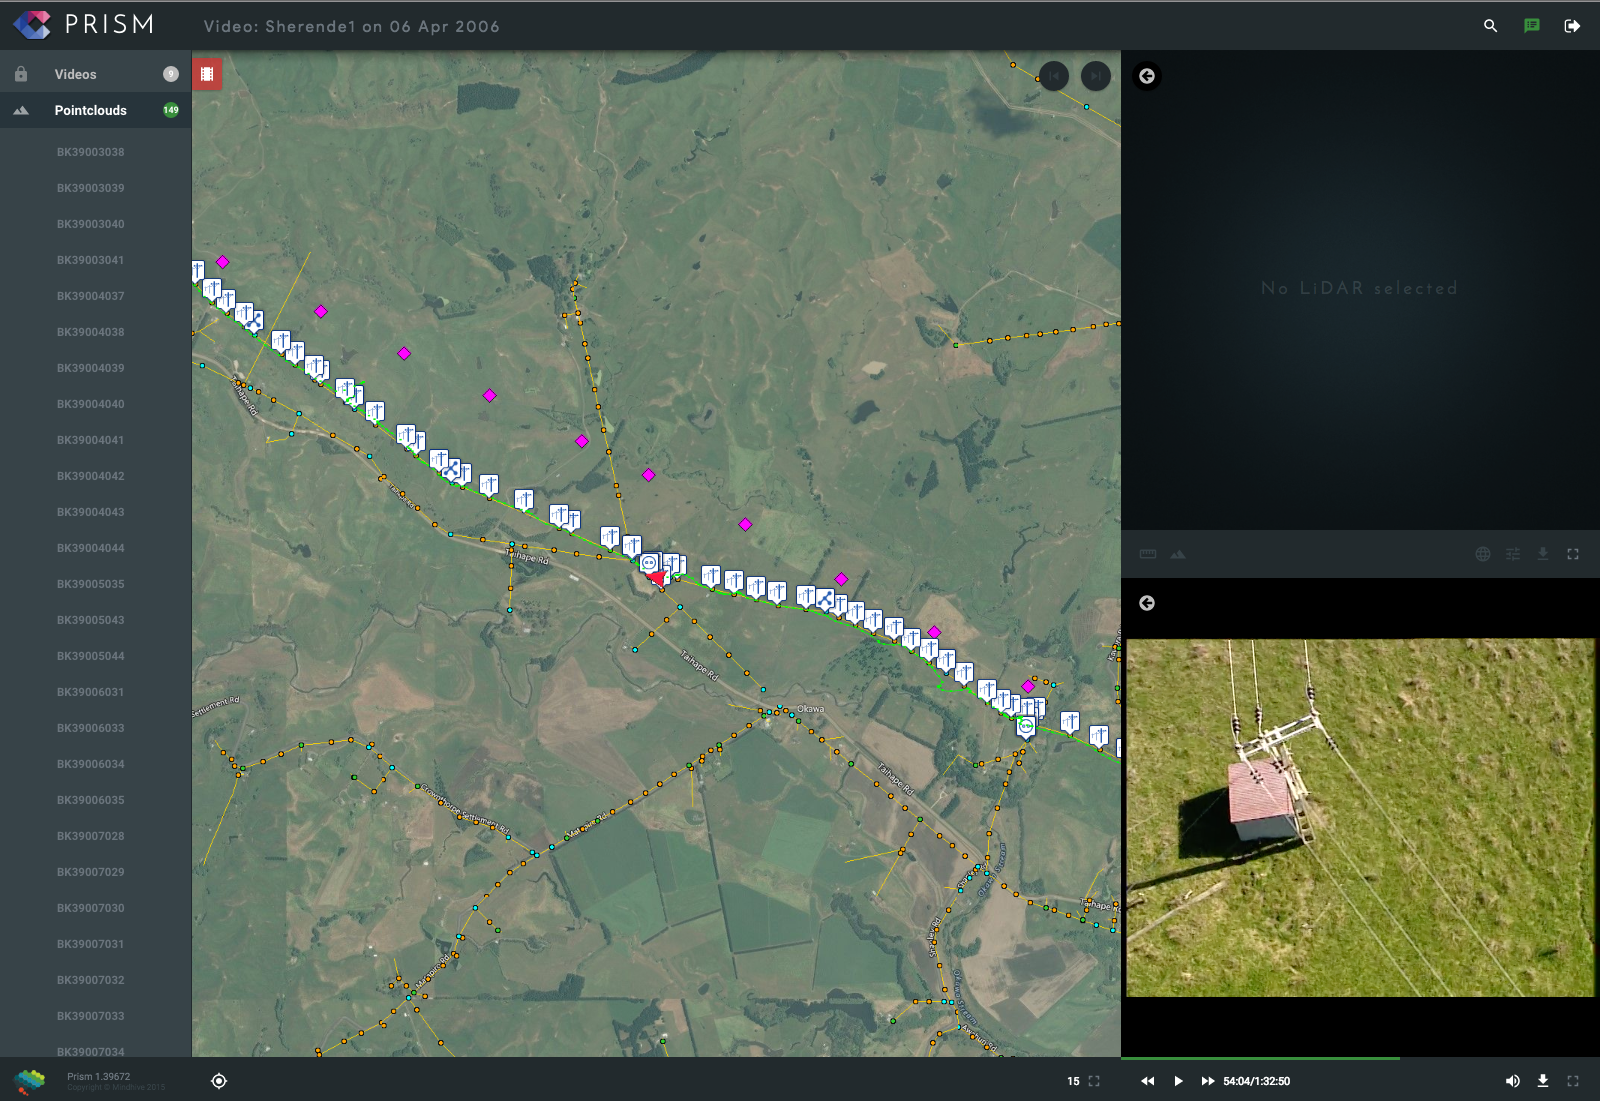 PRISM Aerial map tracking and Video